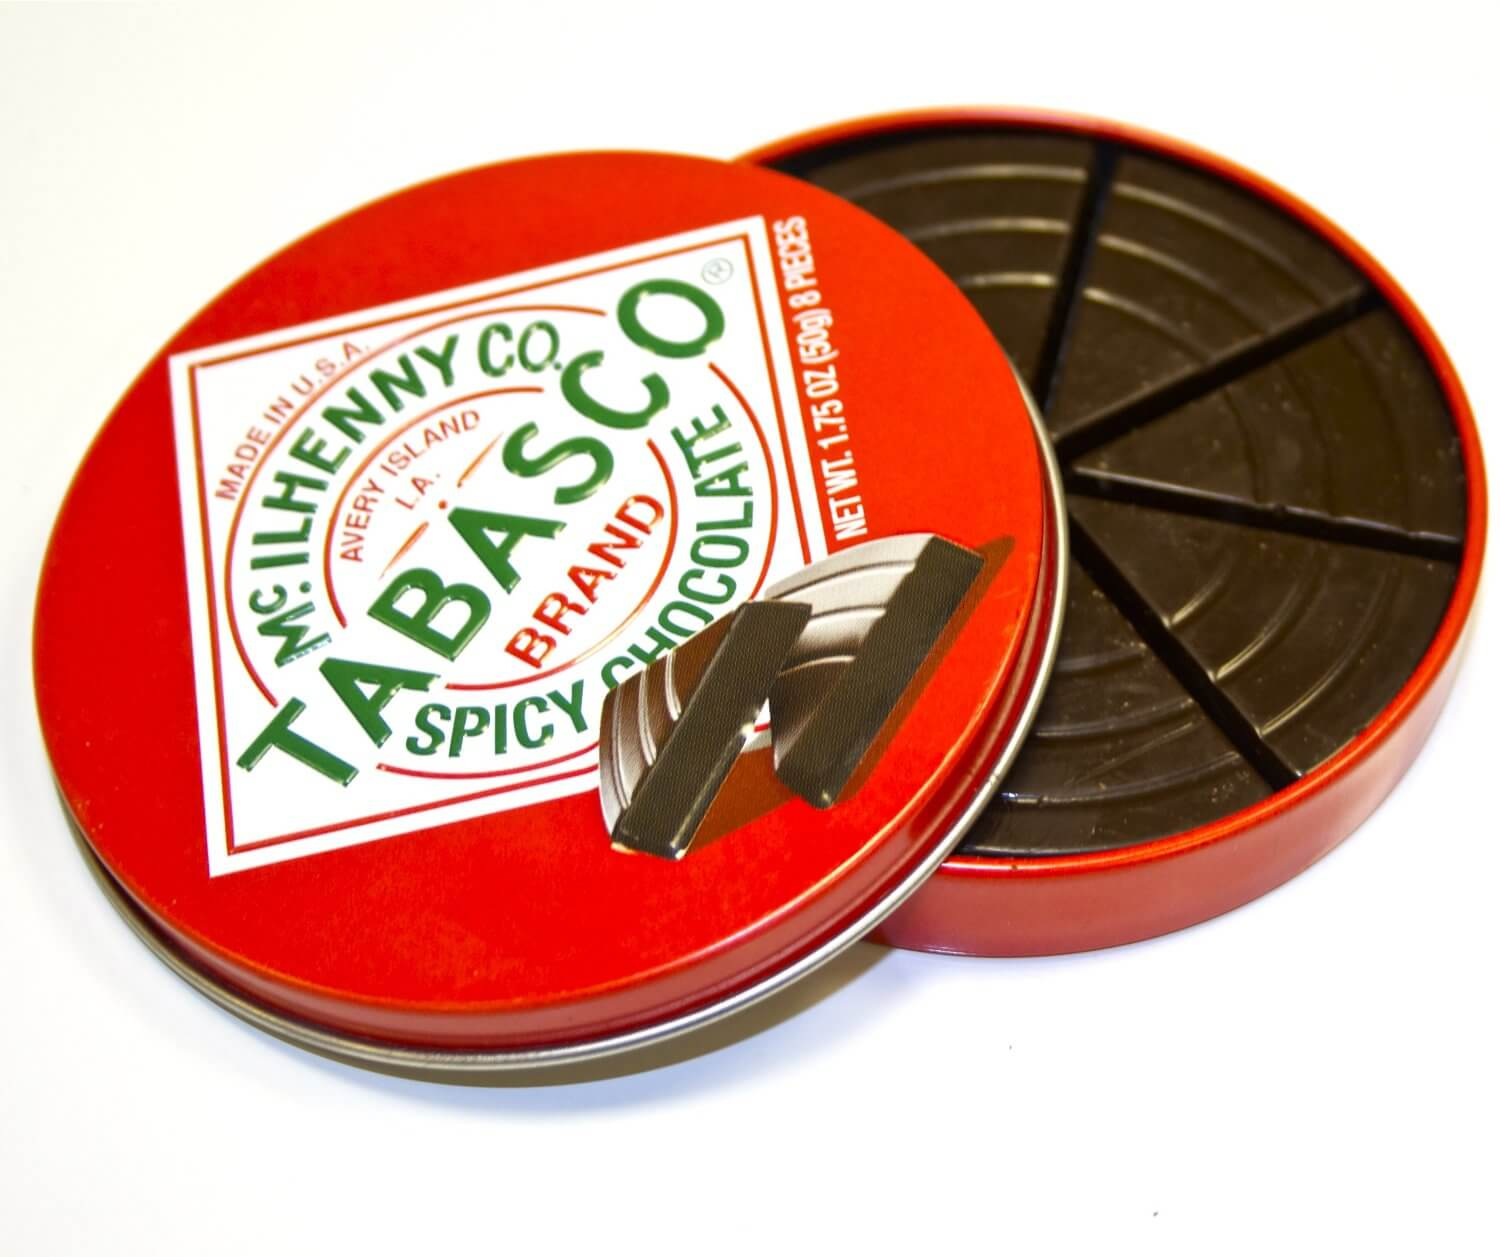 Tabasco Spicy Chocolate Review: Sweet Heat